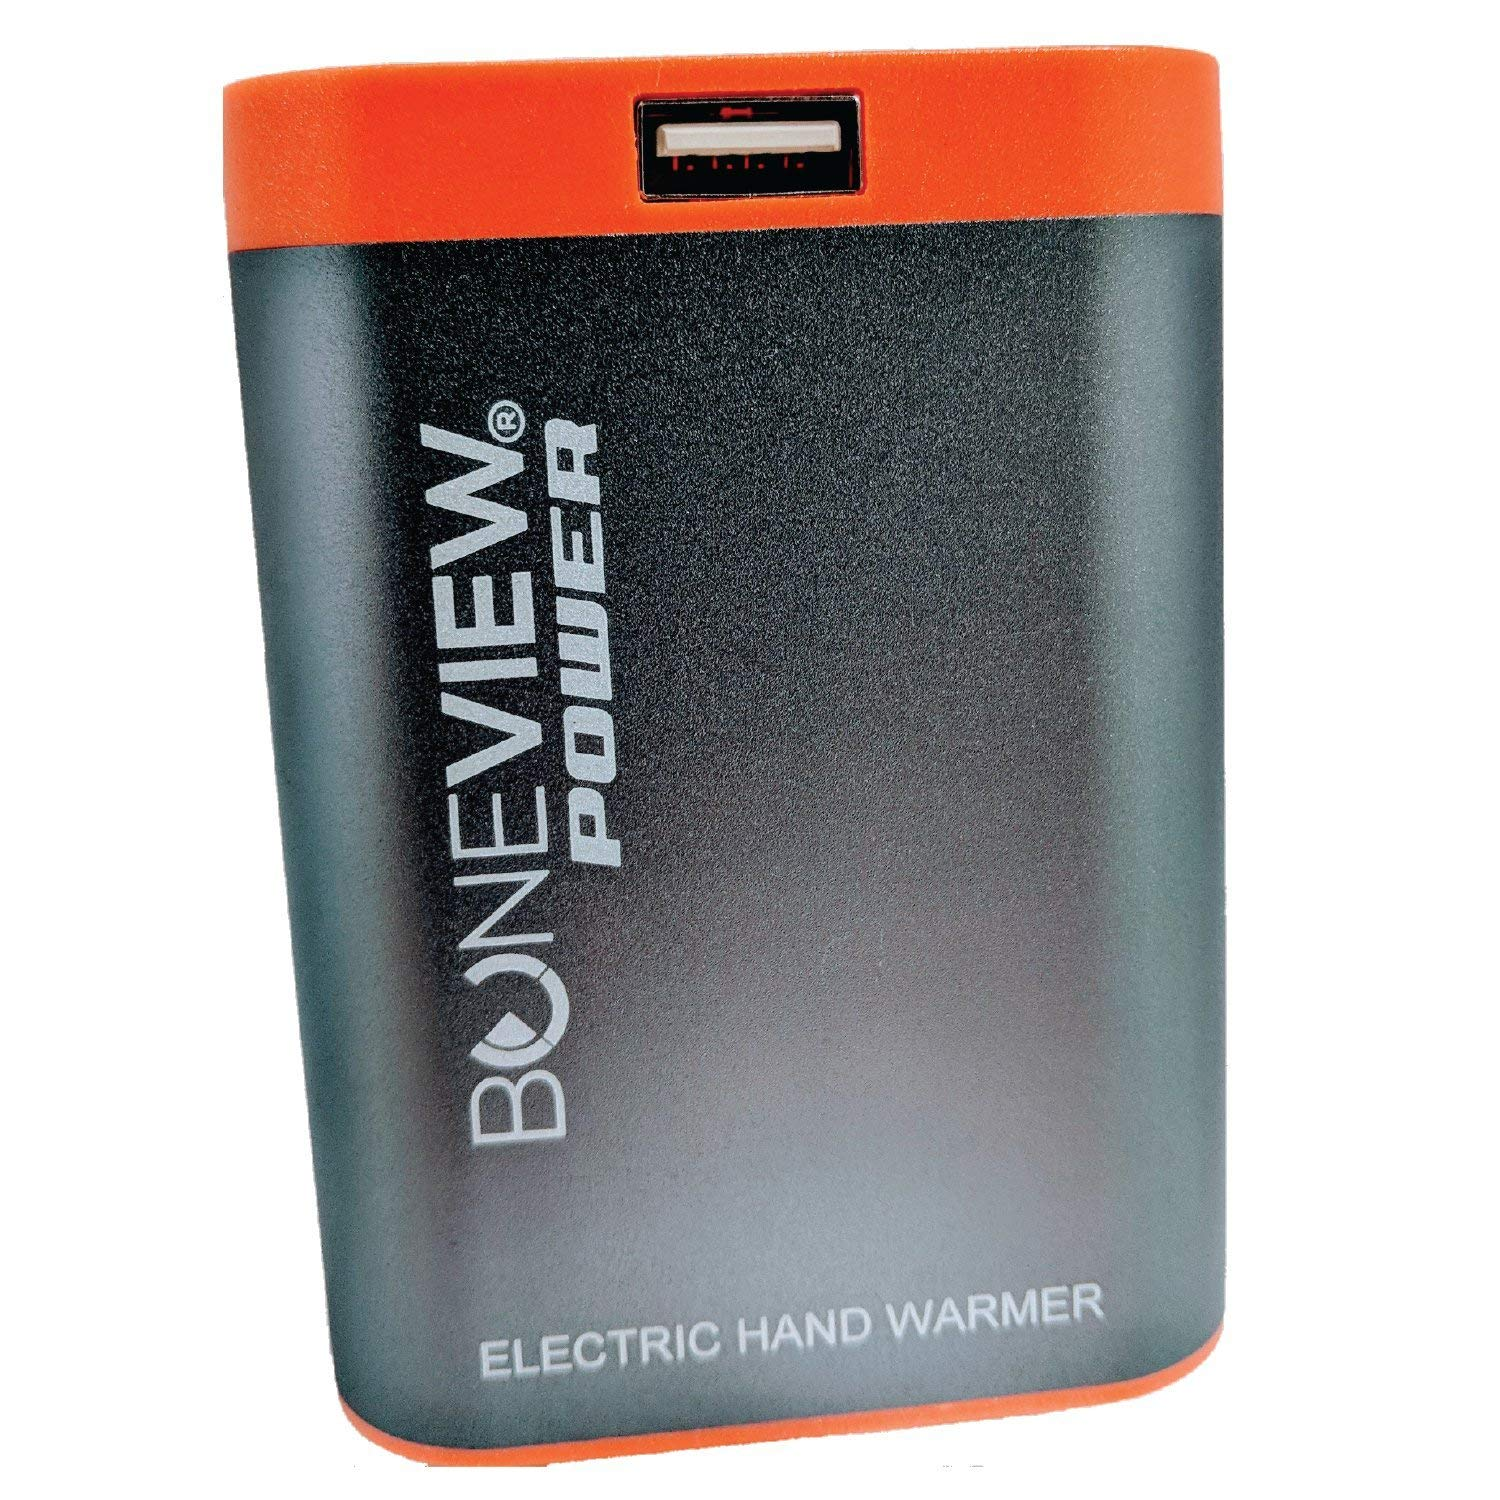 3 in 1 handwarmer, phone charger and LED flashlight.